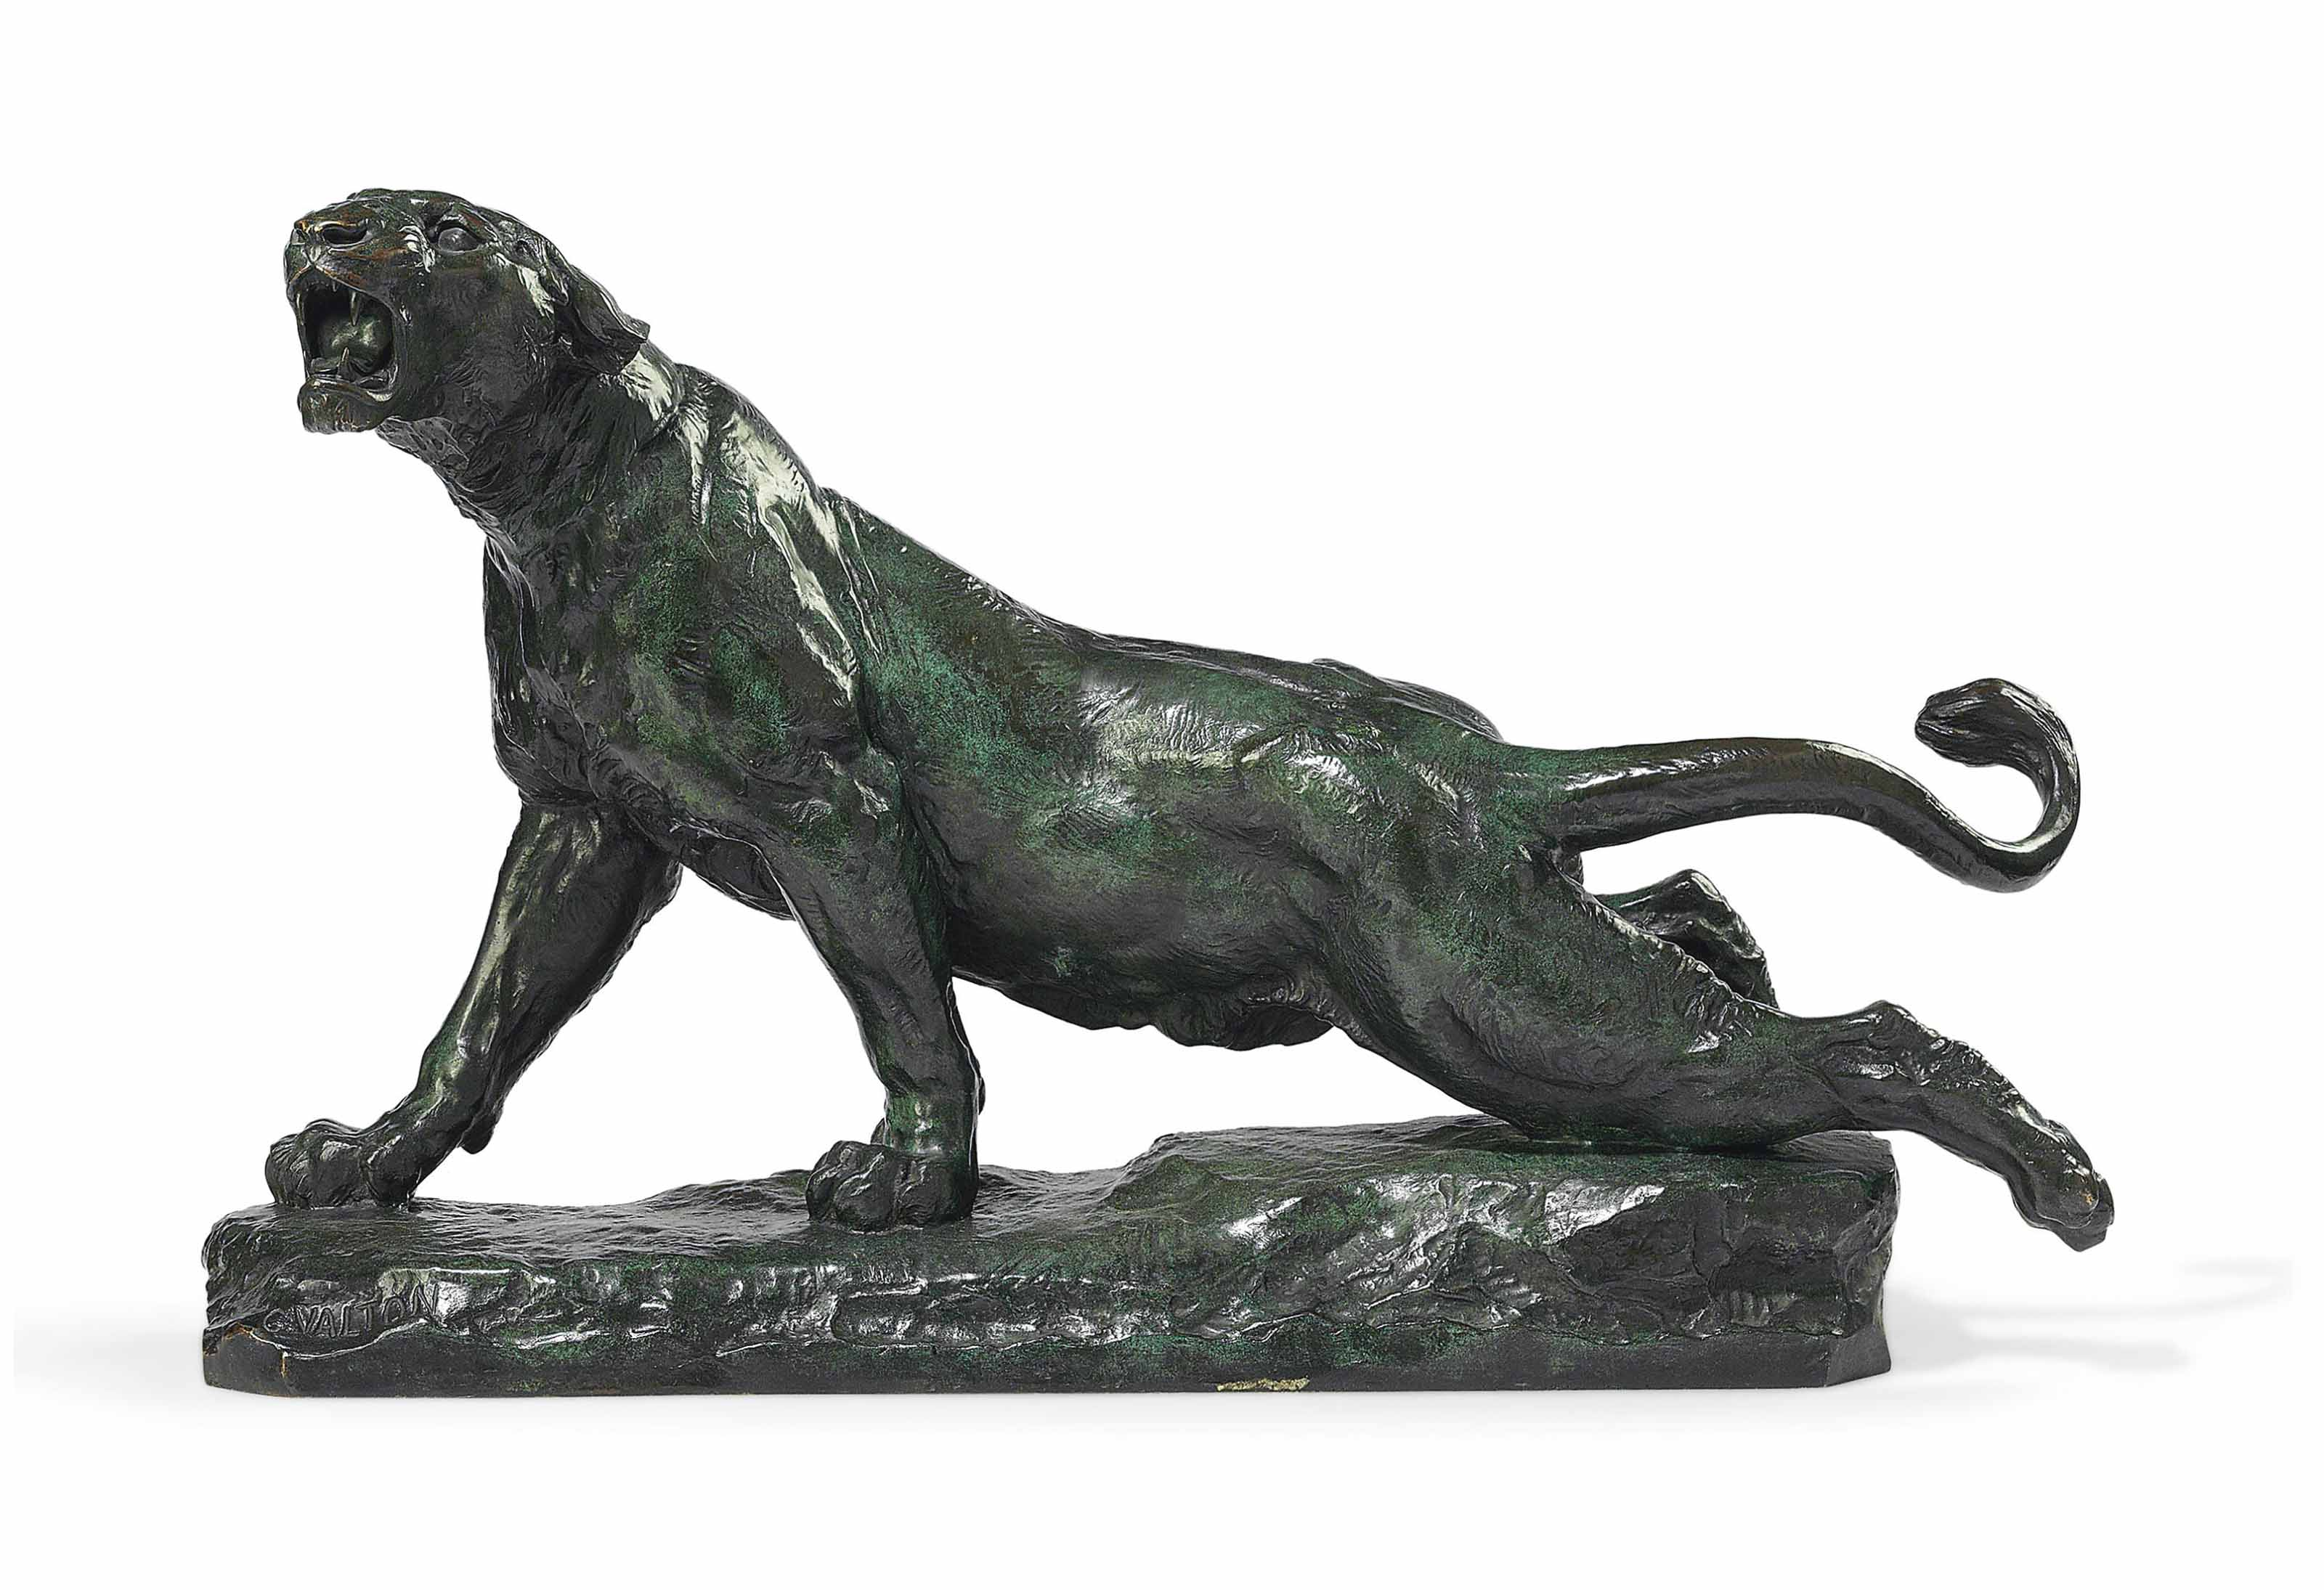 A FRENCH PATINATED-BRONZE FIGURE OF A WOUNDED TIGER